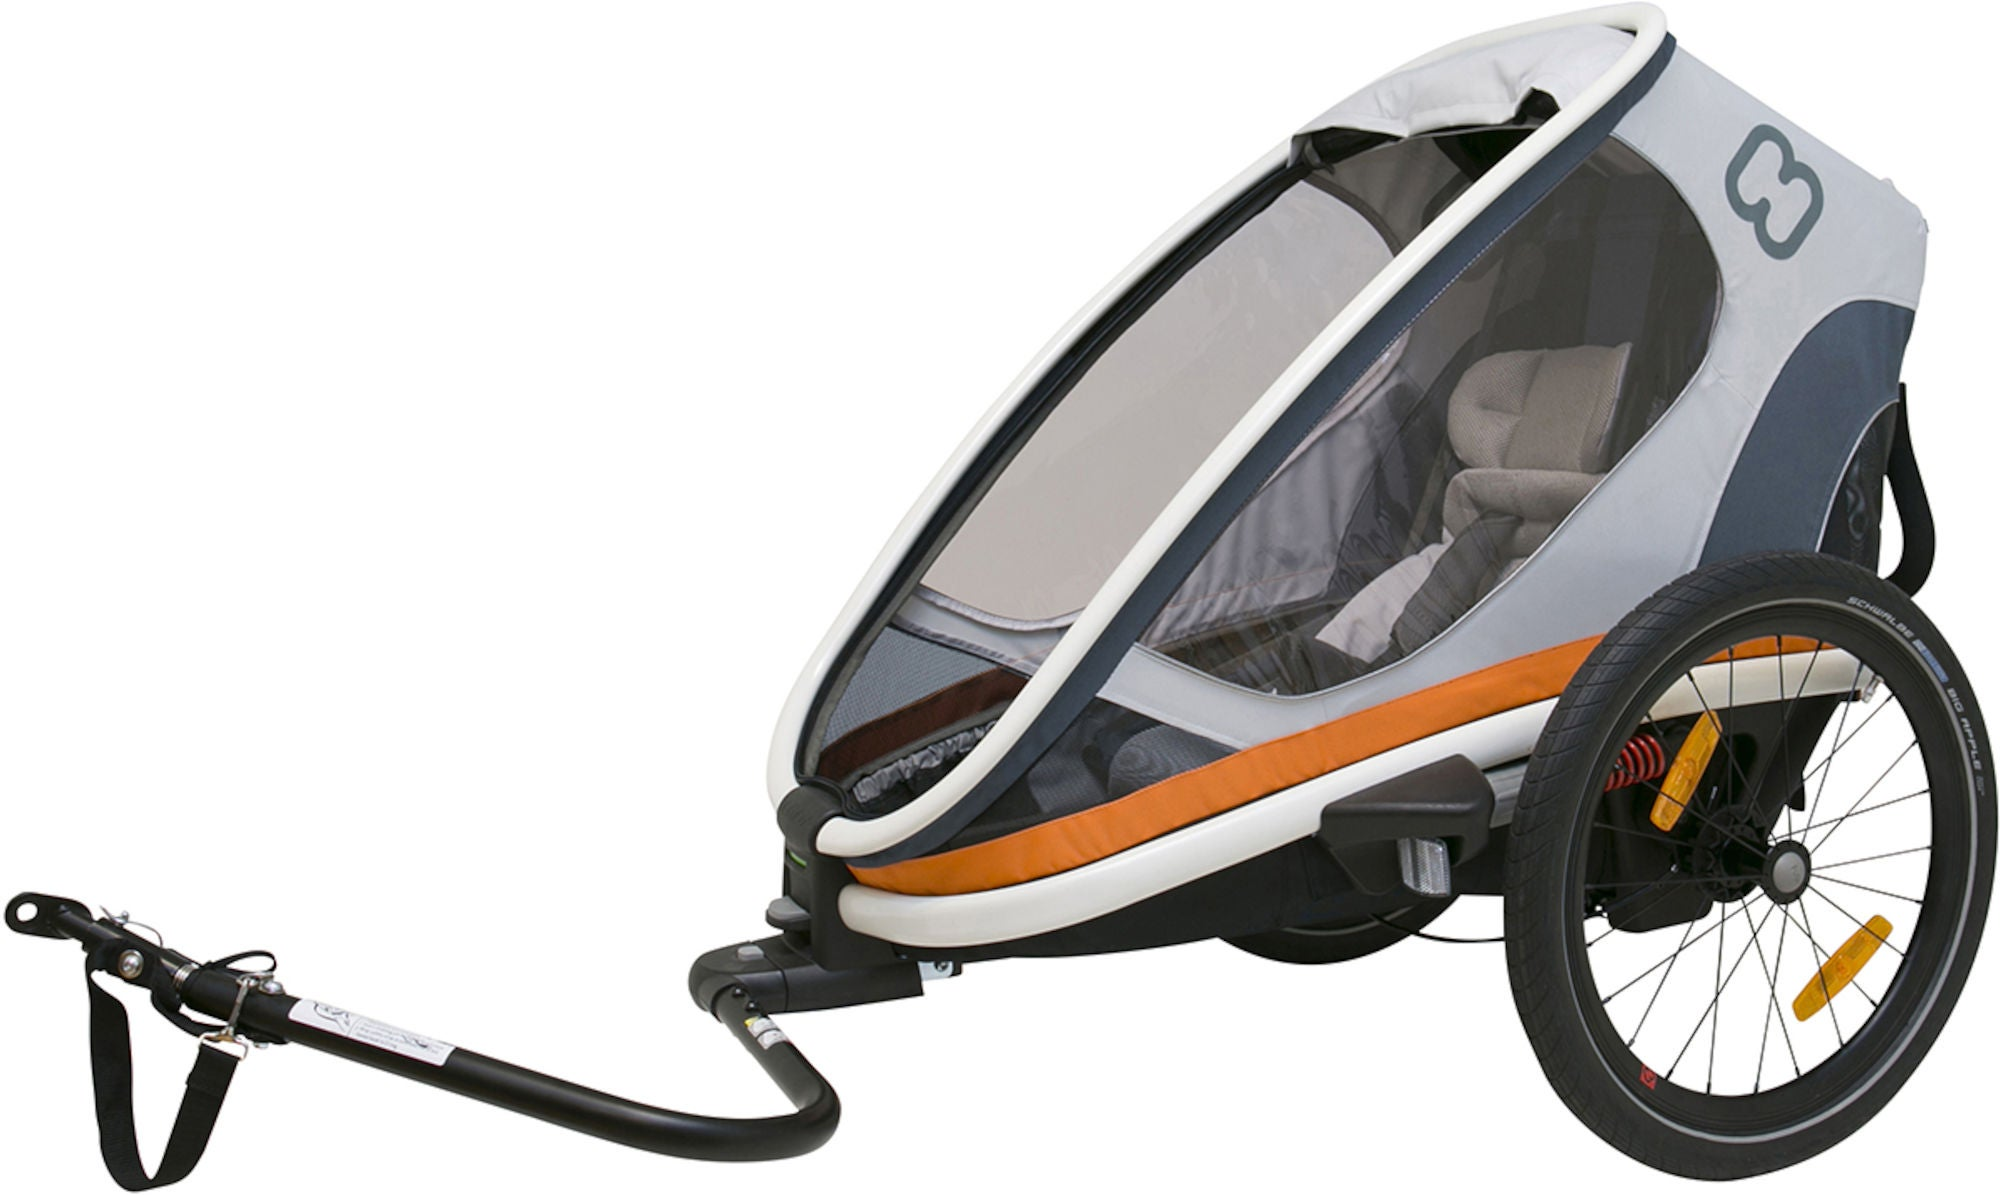 Hamax Outback One Cykelvagn 2-in-1, White/Grey/Orange